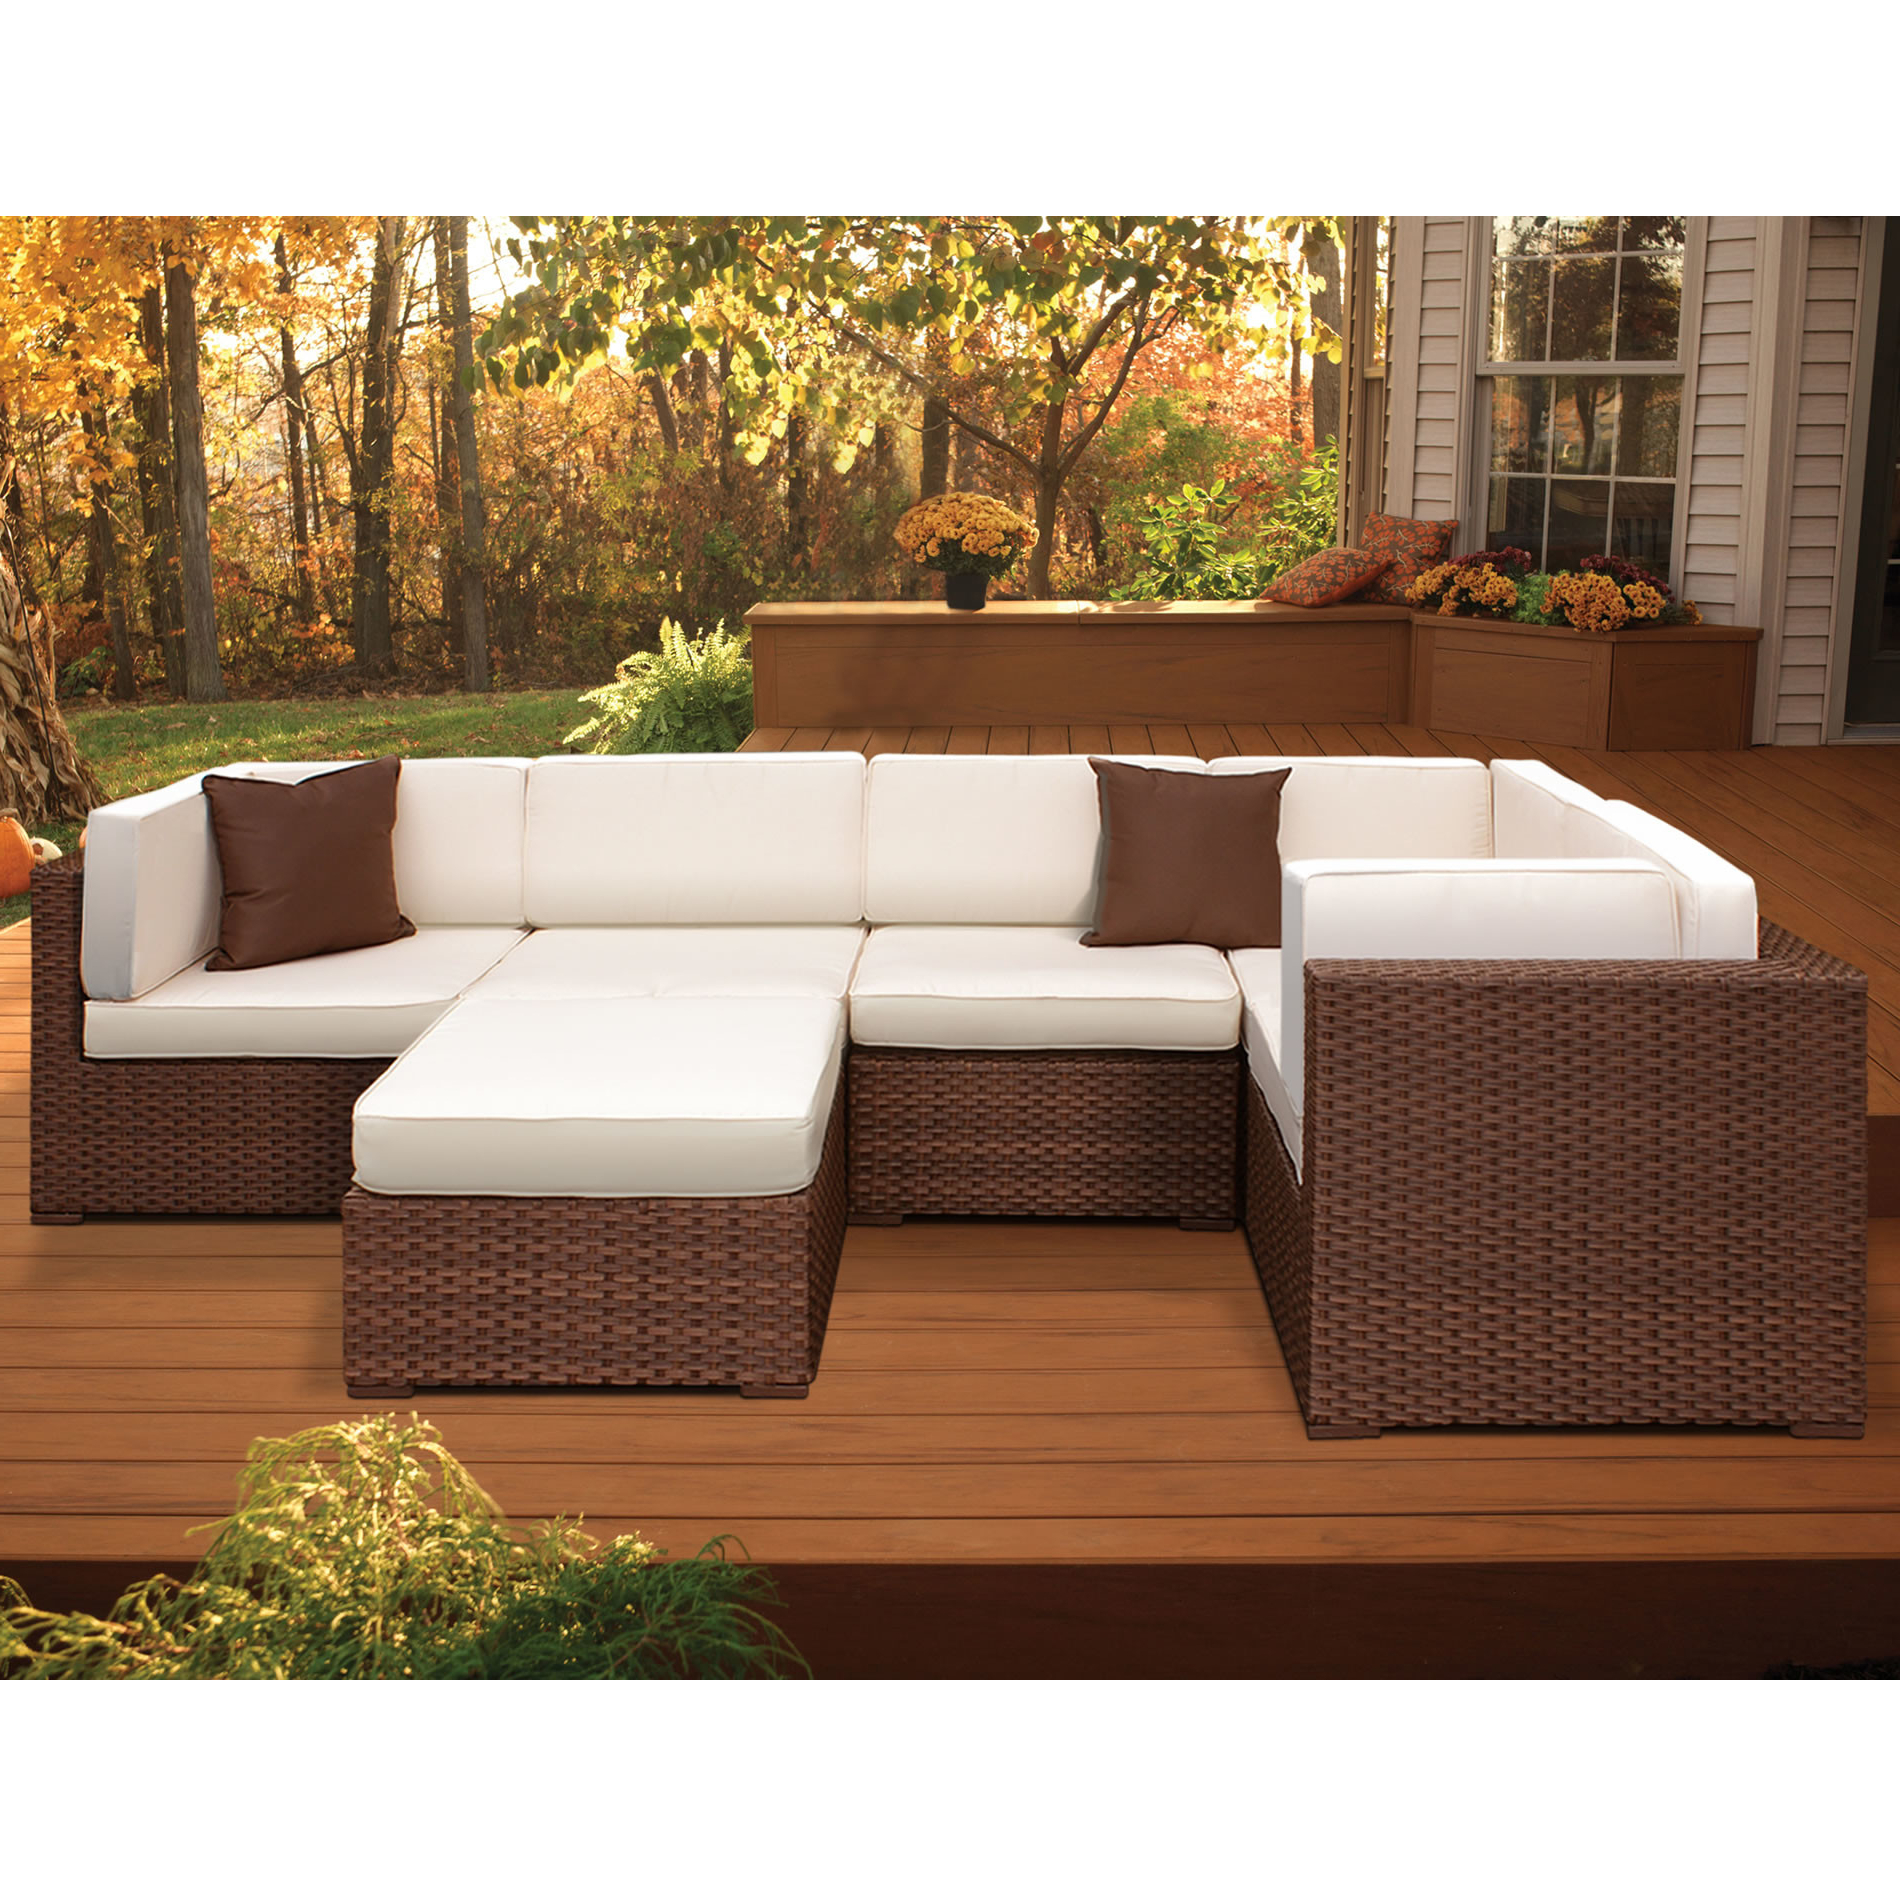 Lorentzen Patio Sectionals With Cushions With Well Known Details About Brayden Studio Lorentzen 6 Piece Sectional Set With Cushions (View 15 of 20)